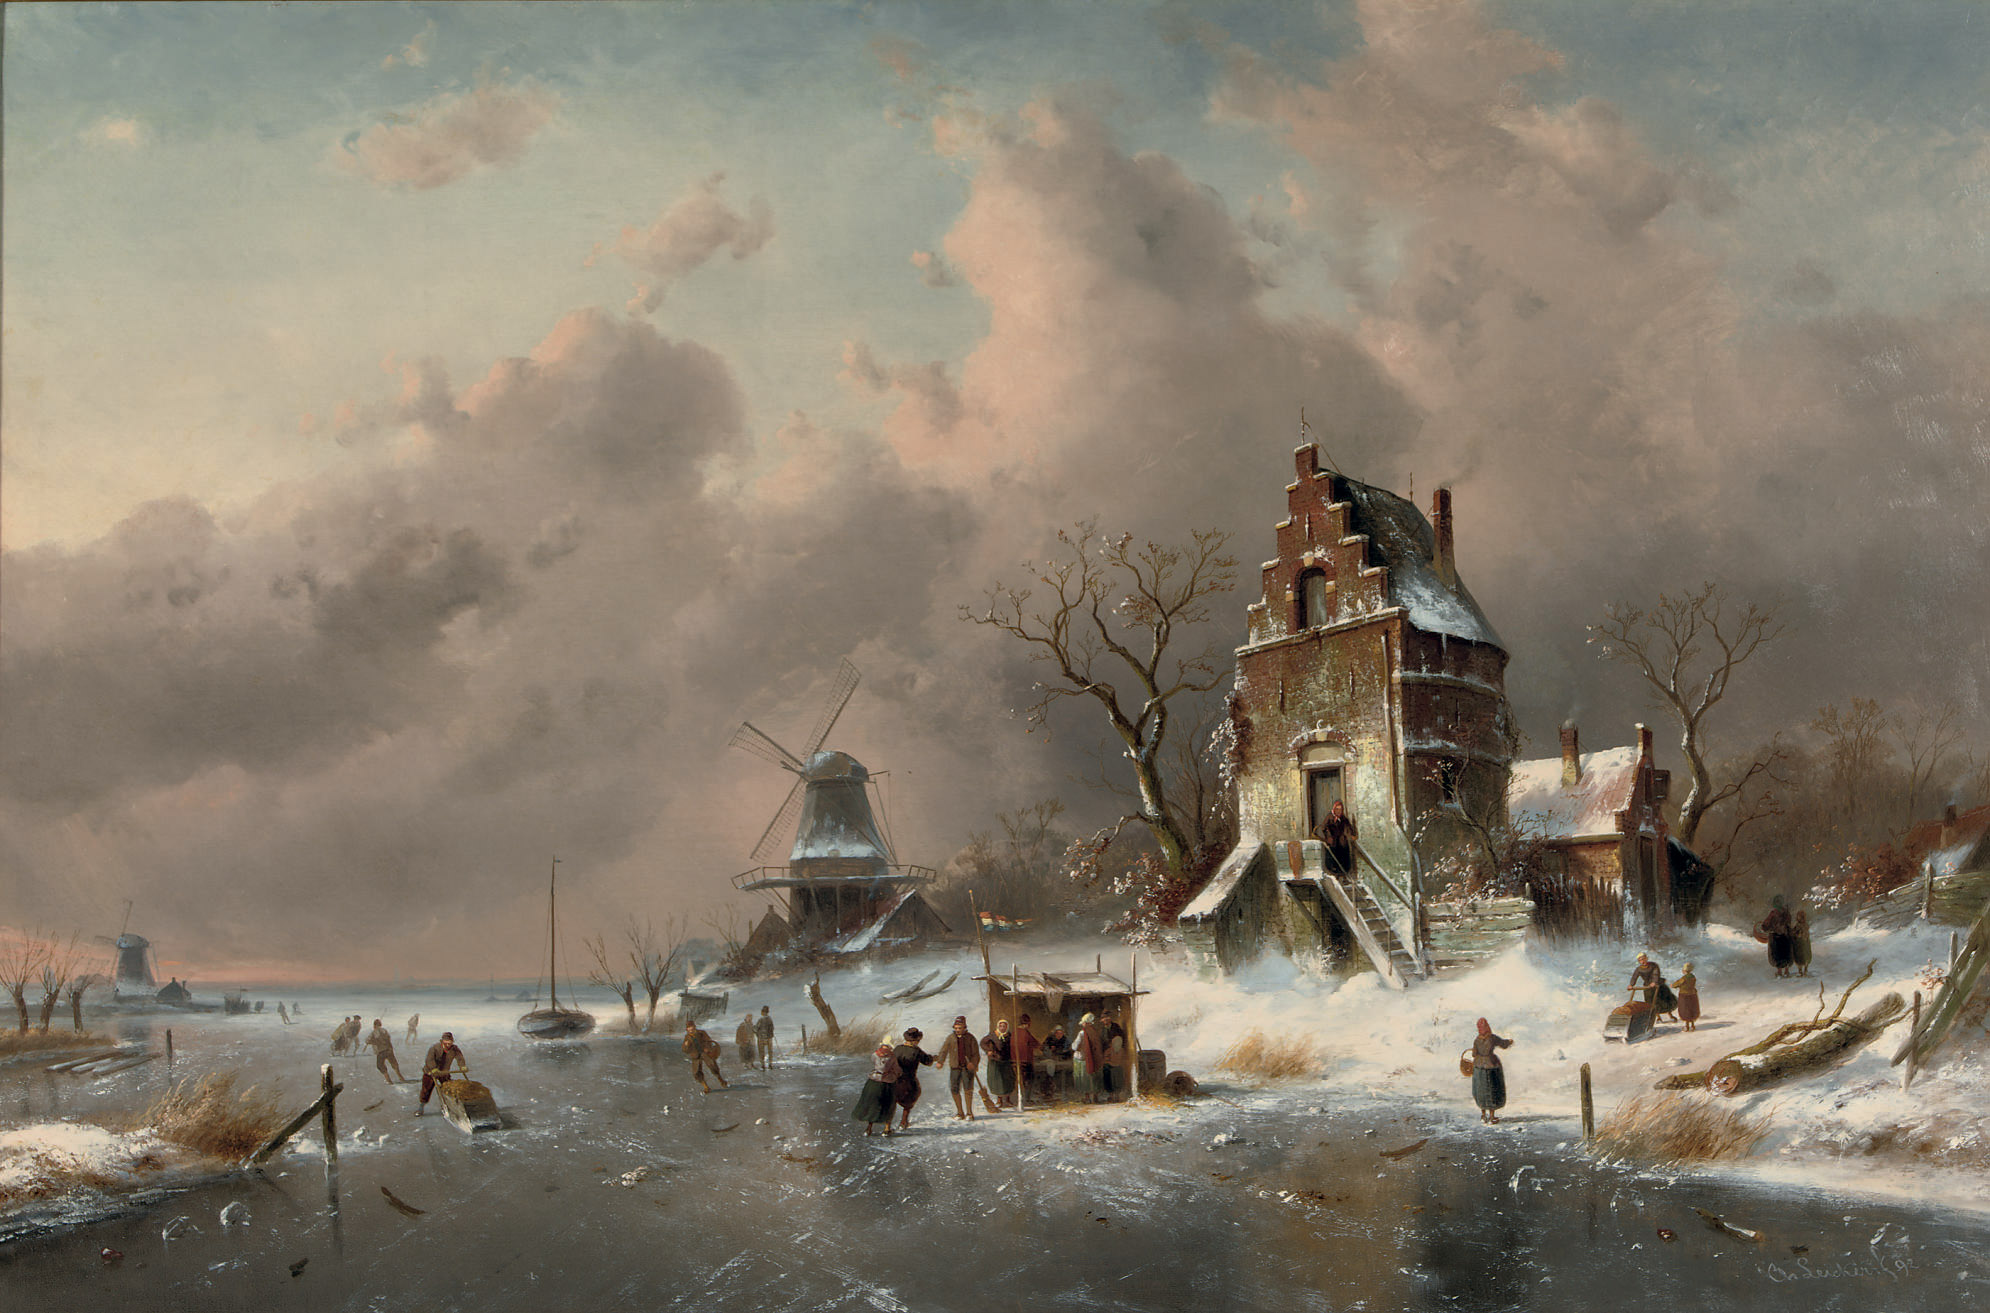 Numerous skaters near a koek-en-zopie on a frozen waterway by a mansion